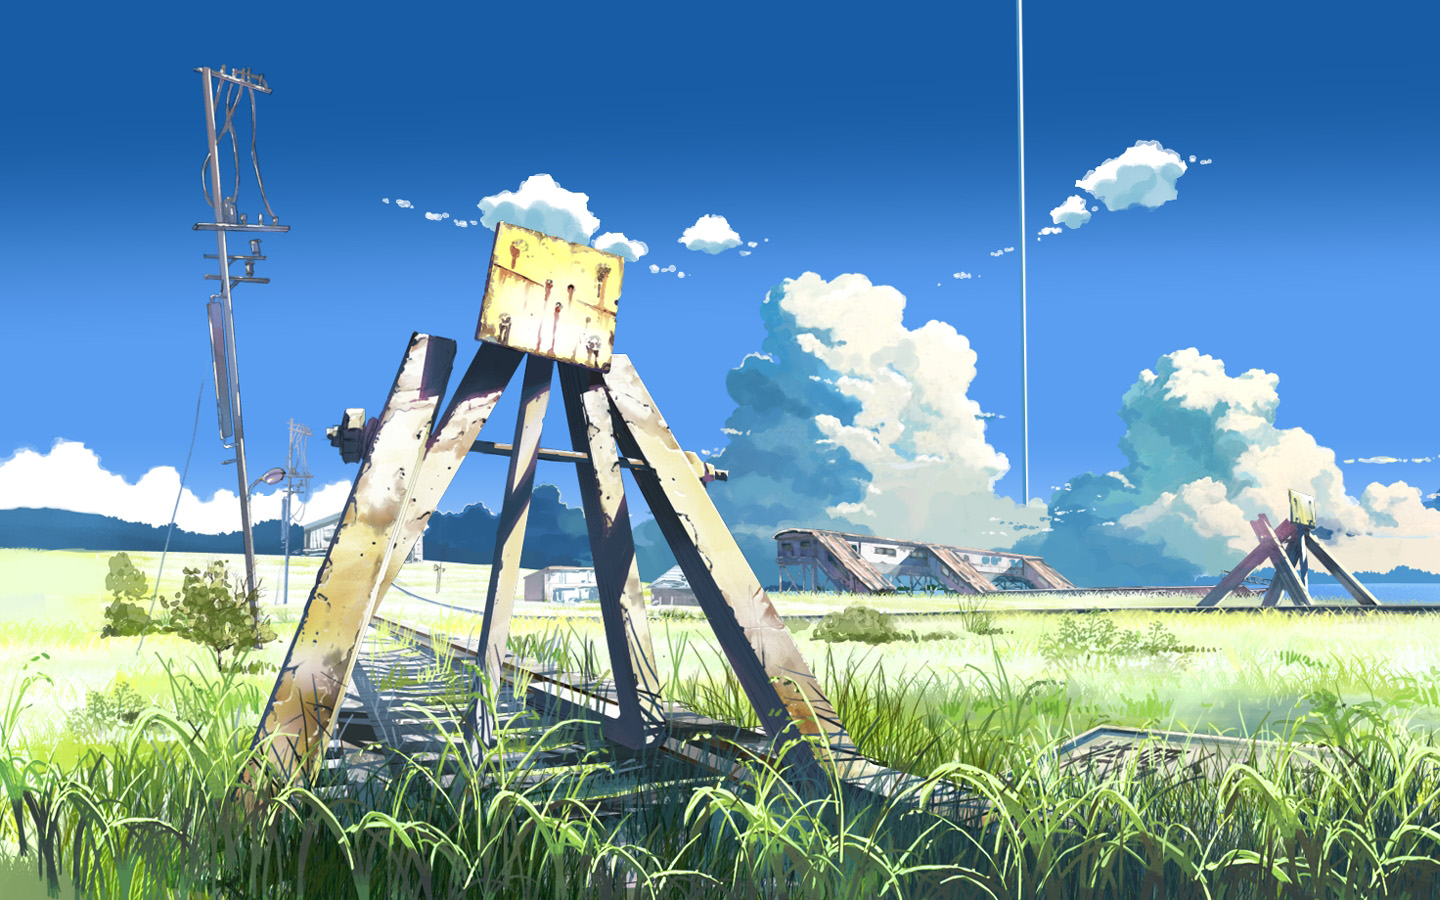 1440 x 900 Wallpapers Wallpaper 9481 1 other anime studio ghiblijpg 1440x900